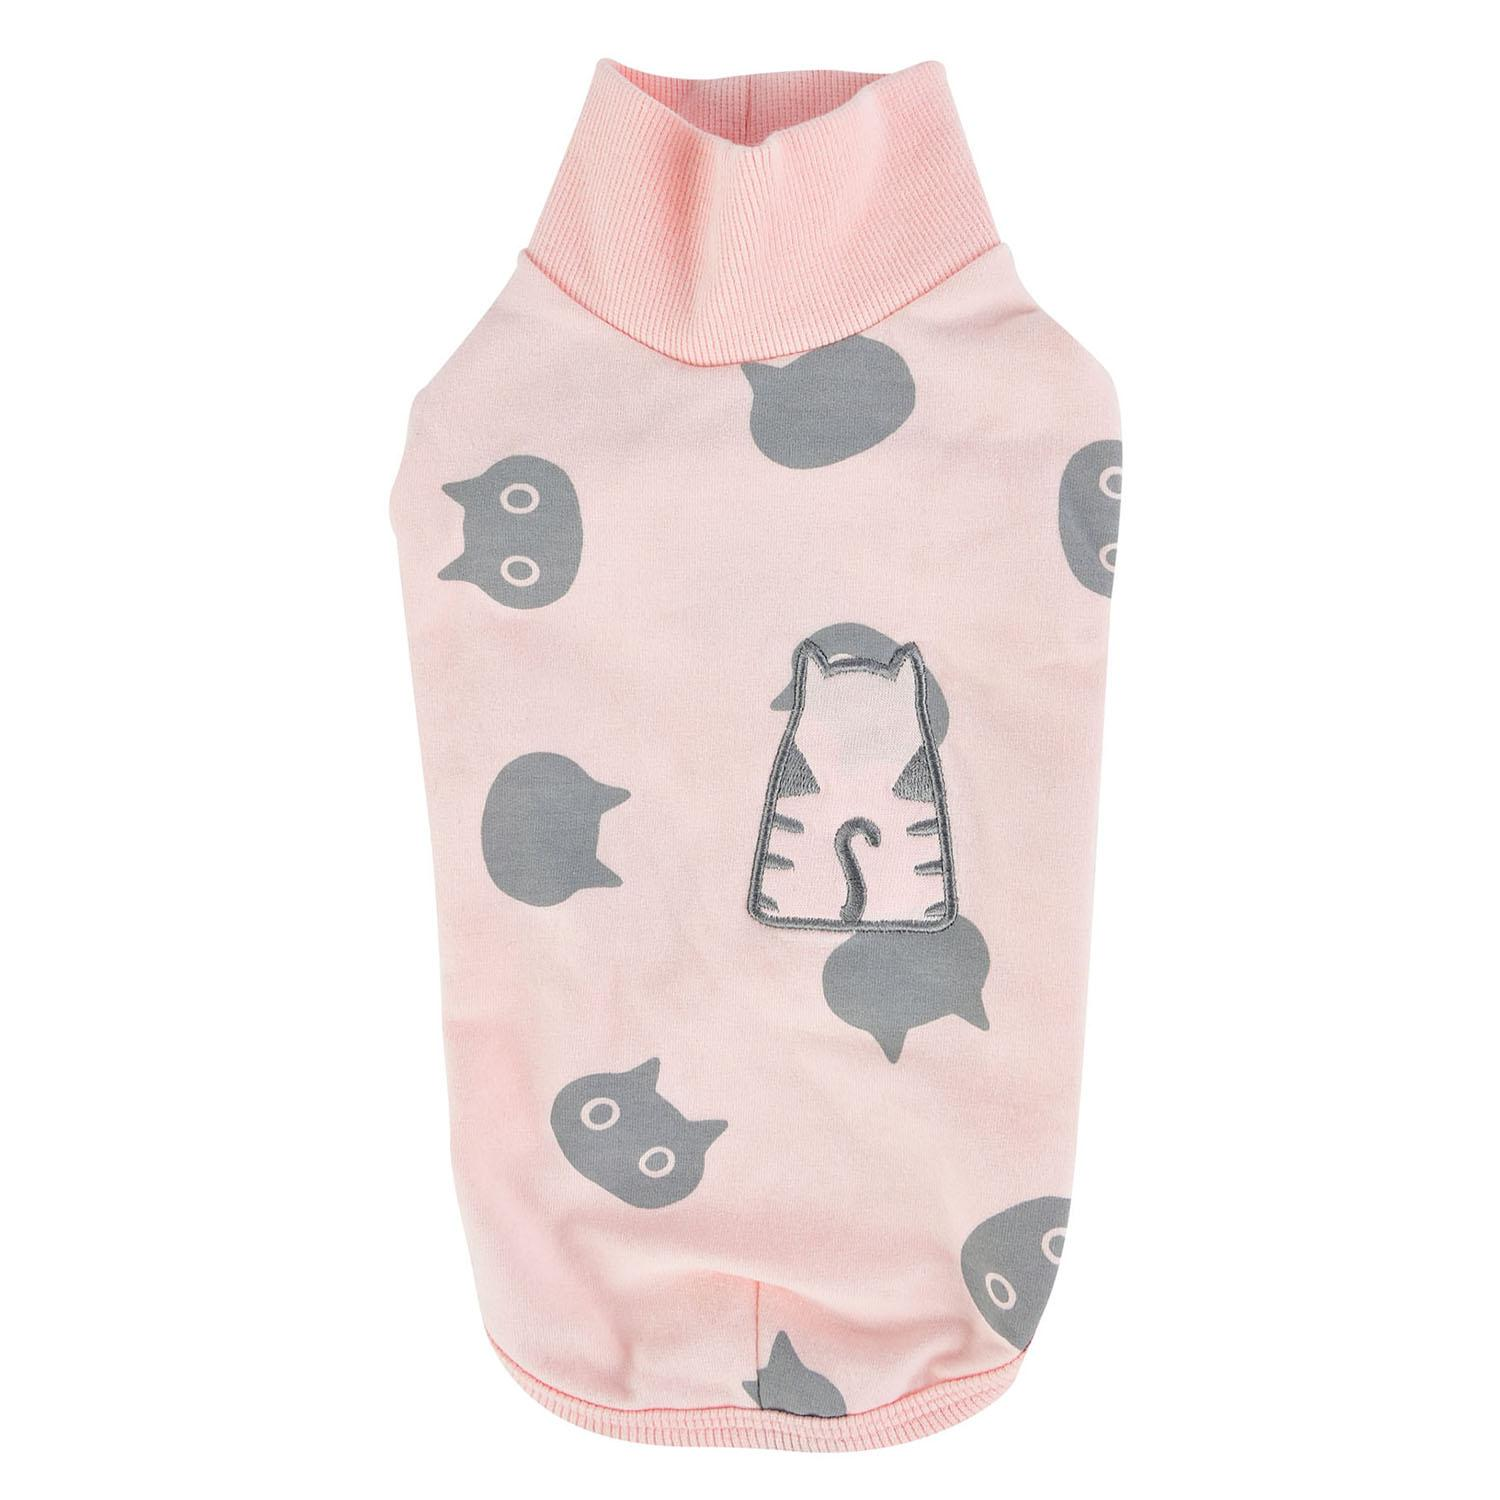 Boo Turtleneck Cat Shirt by Catspia - Pink